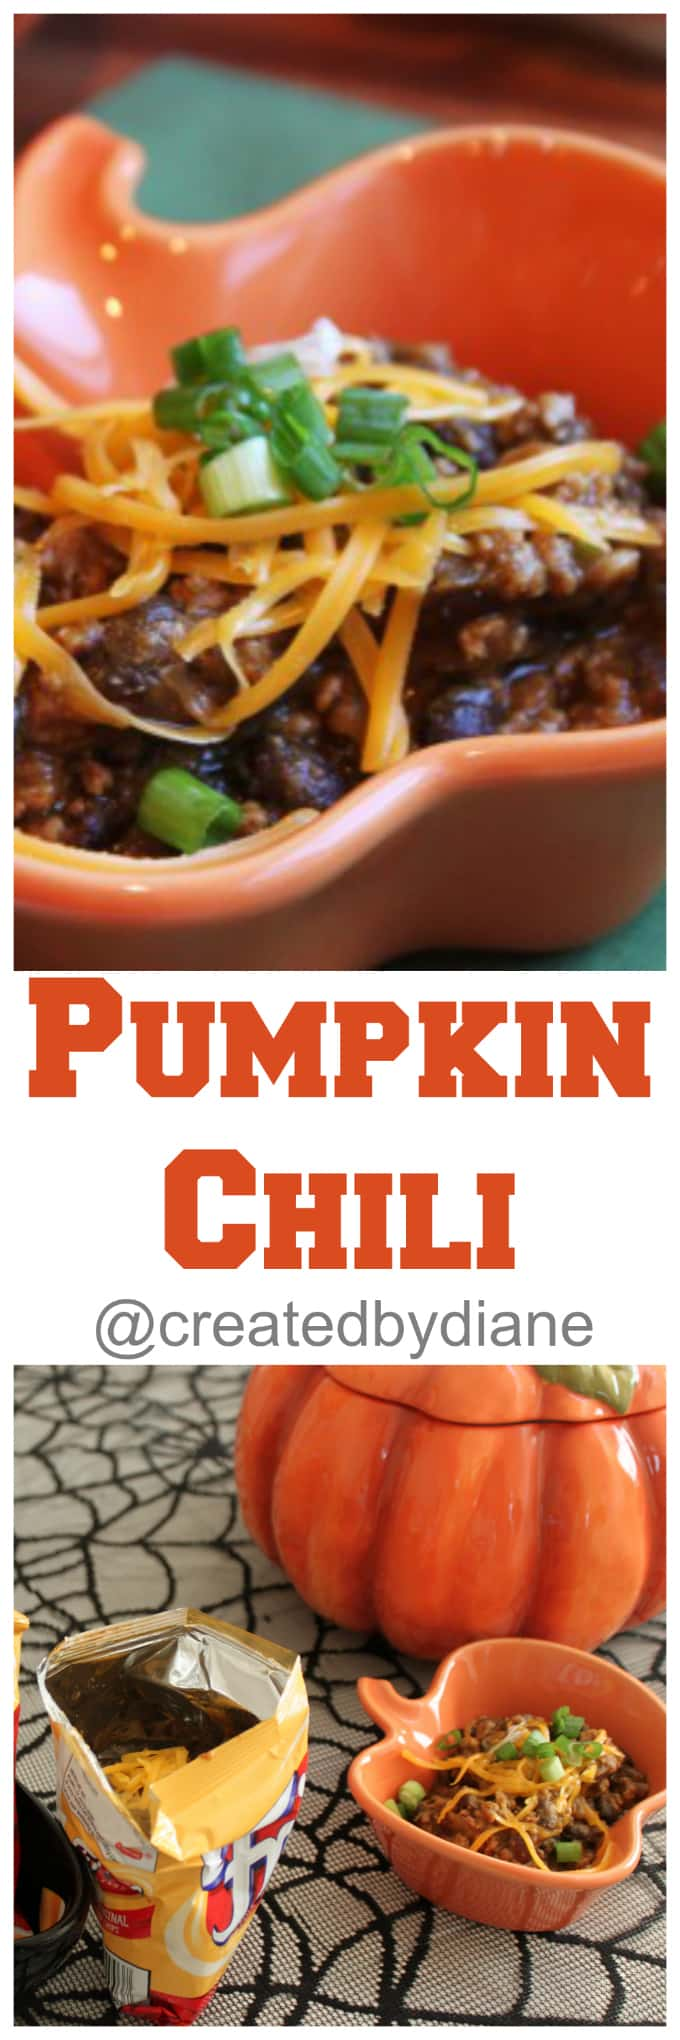 pumpkin-chili-recipe-from-www-createdby-diane-com-createdbydiane